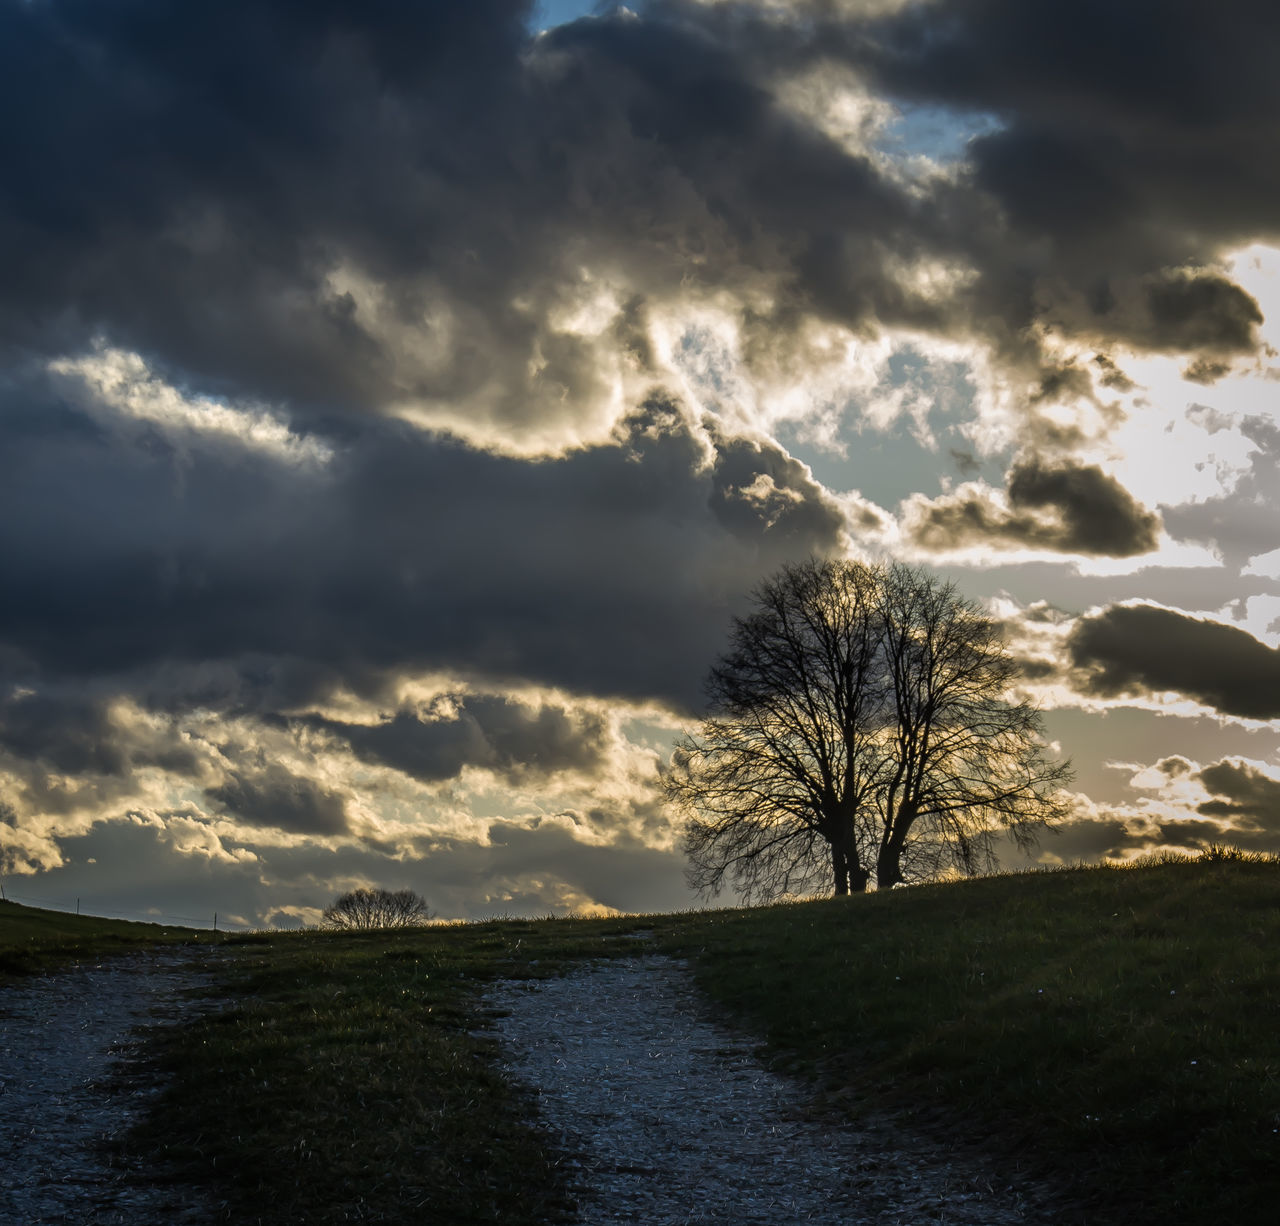 tree, beauty in nature, nature, cloud - sky, tranquility, tranquil scene, sky, scenics, no people, outdoors, bare tree, landscape, water, day, grass